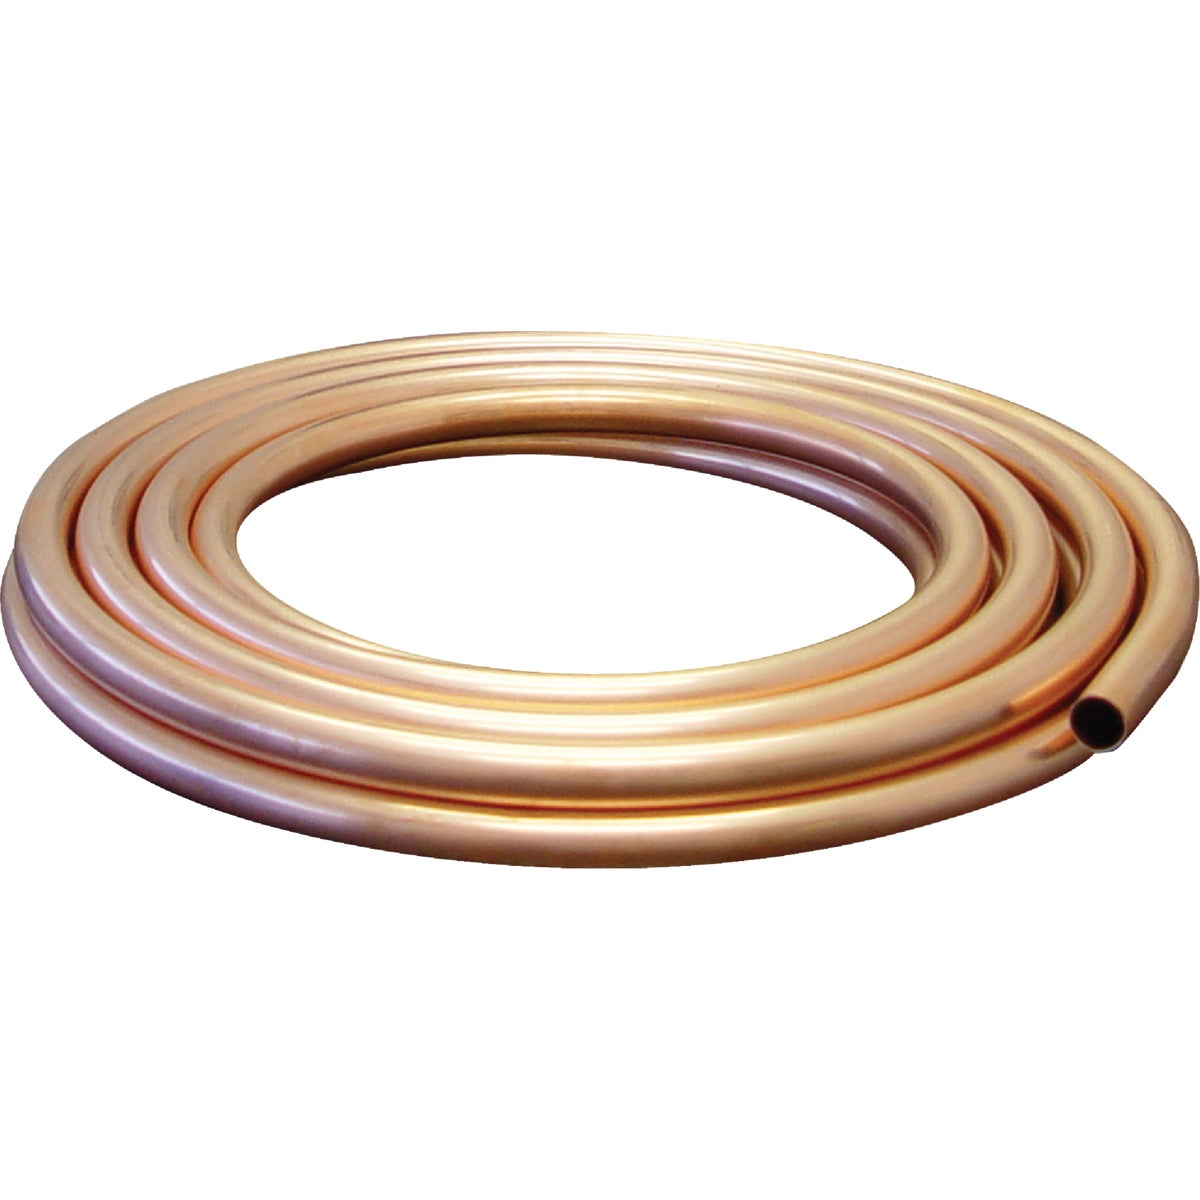 "1/4""IDX10' L COPPER TUBE - LSC2010P by Mueller B K"